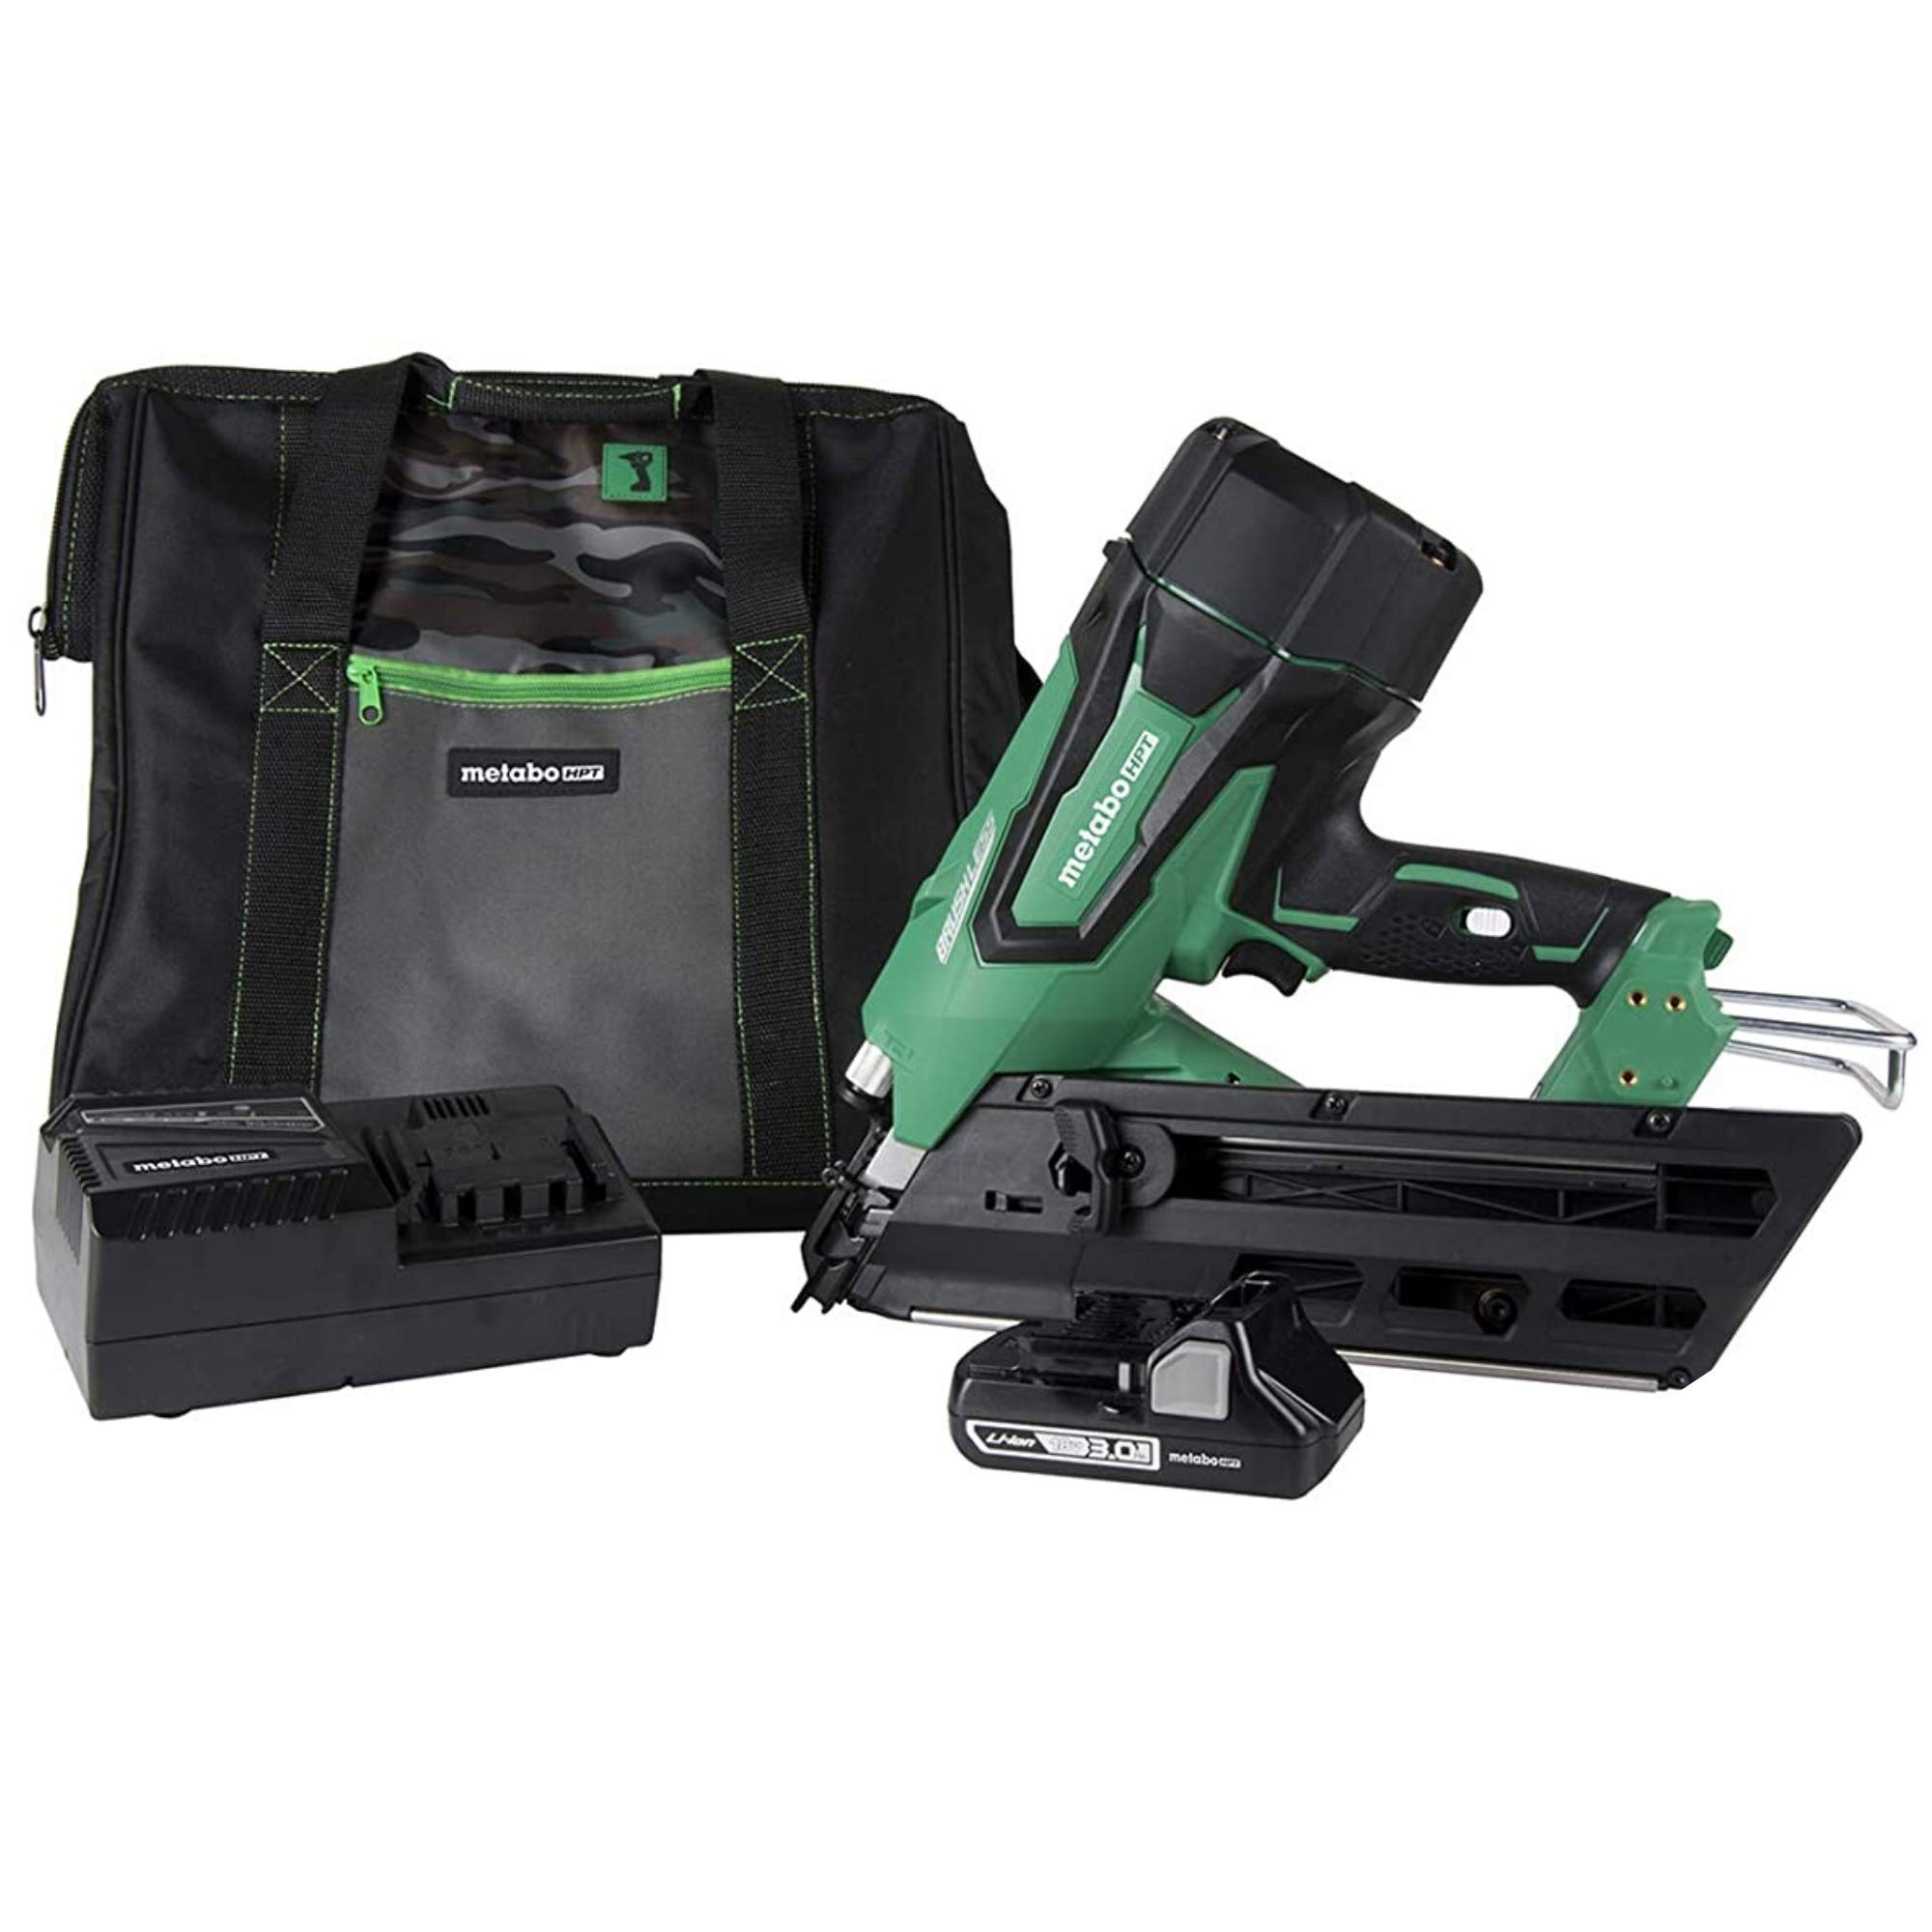 """Metabo HPT NR1890DC 18V Cordless Framing Nailer, Brushless Motor, 2"""" up to 3-1/2"""" Clipped & Offset Round Paper Strip Nails, 30 Degree Magazine, 3.0 Ah Lithium Ion Battery, Lifetime Tool Warranty"""